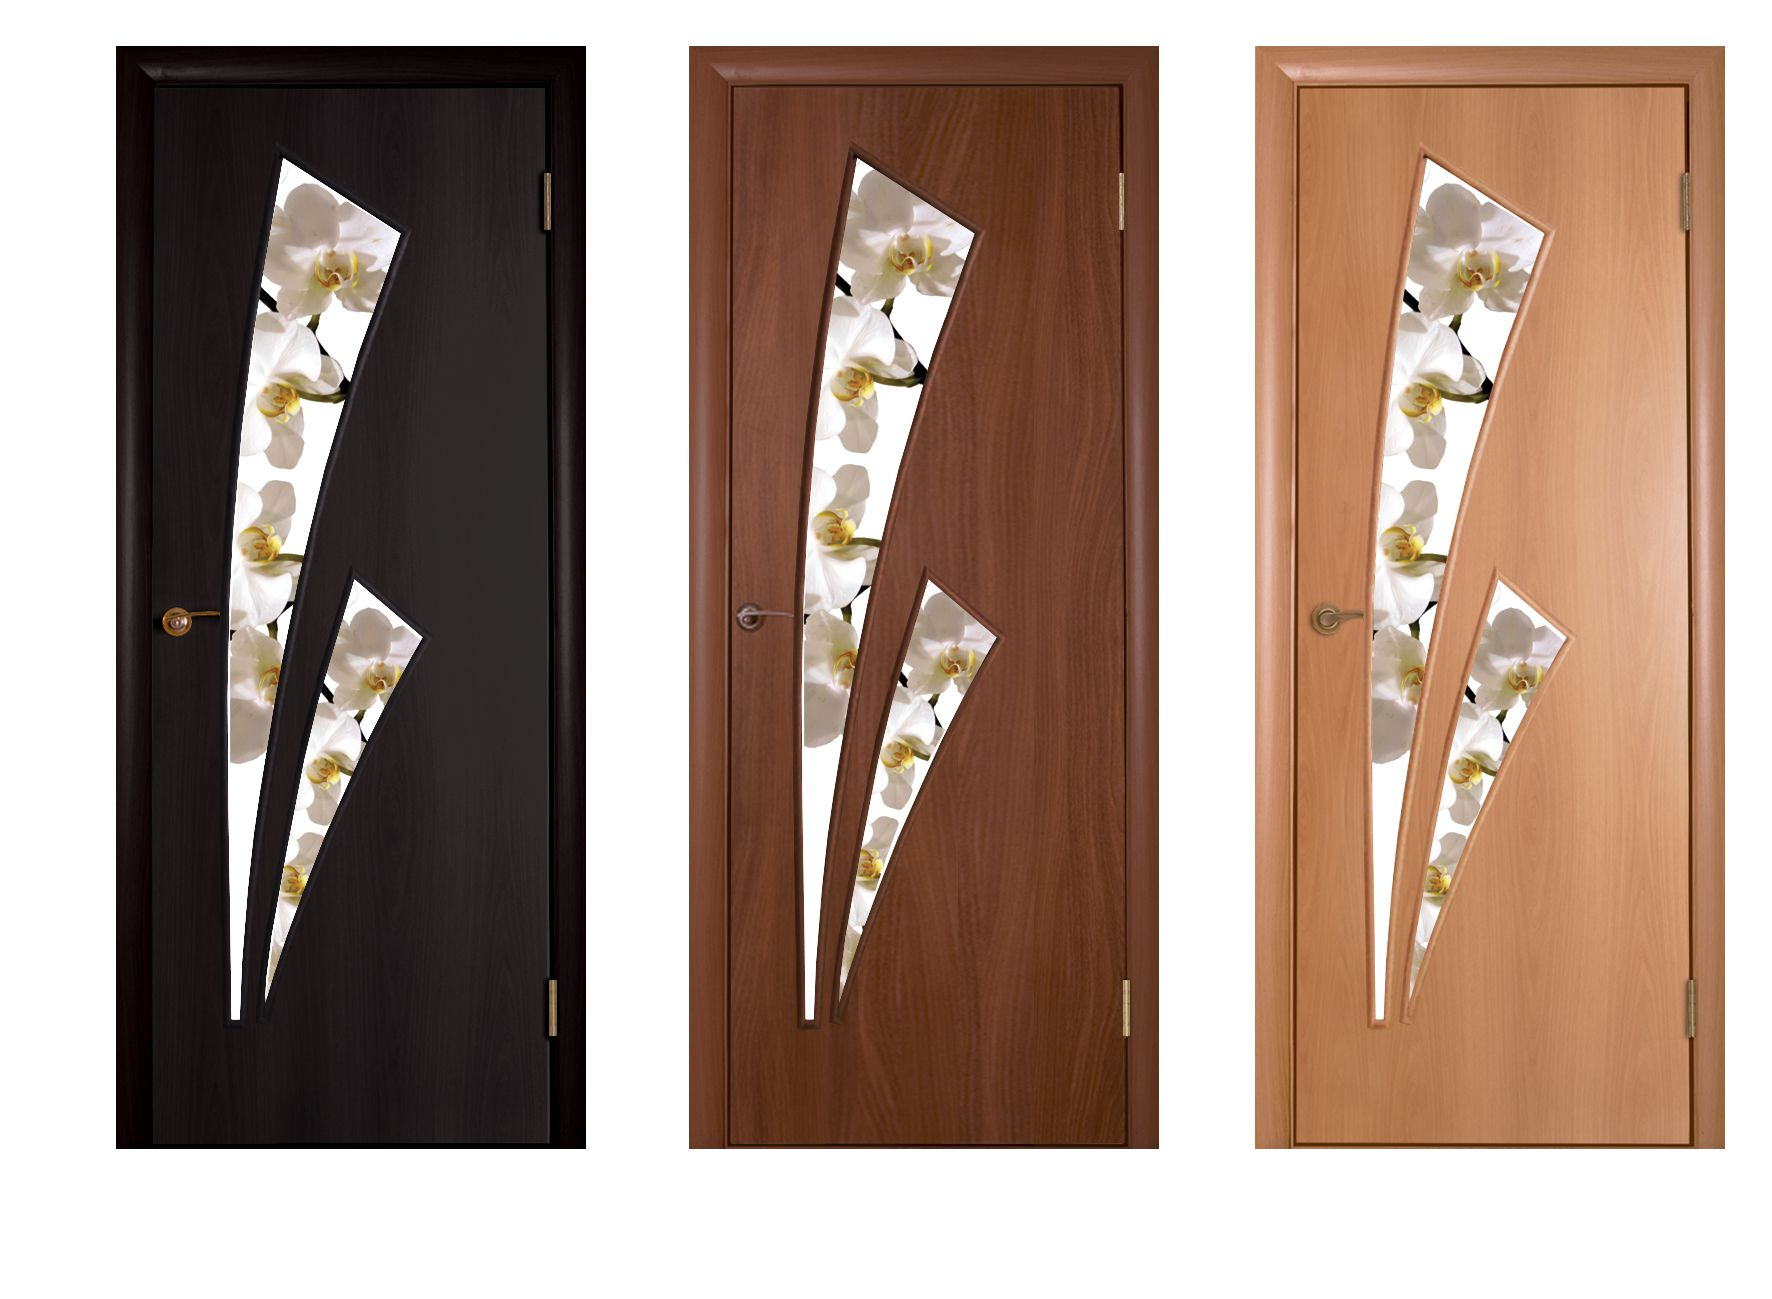 Design of laminated doors